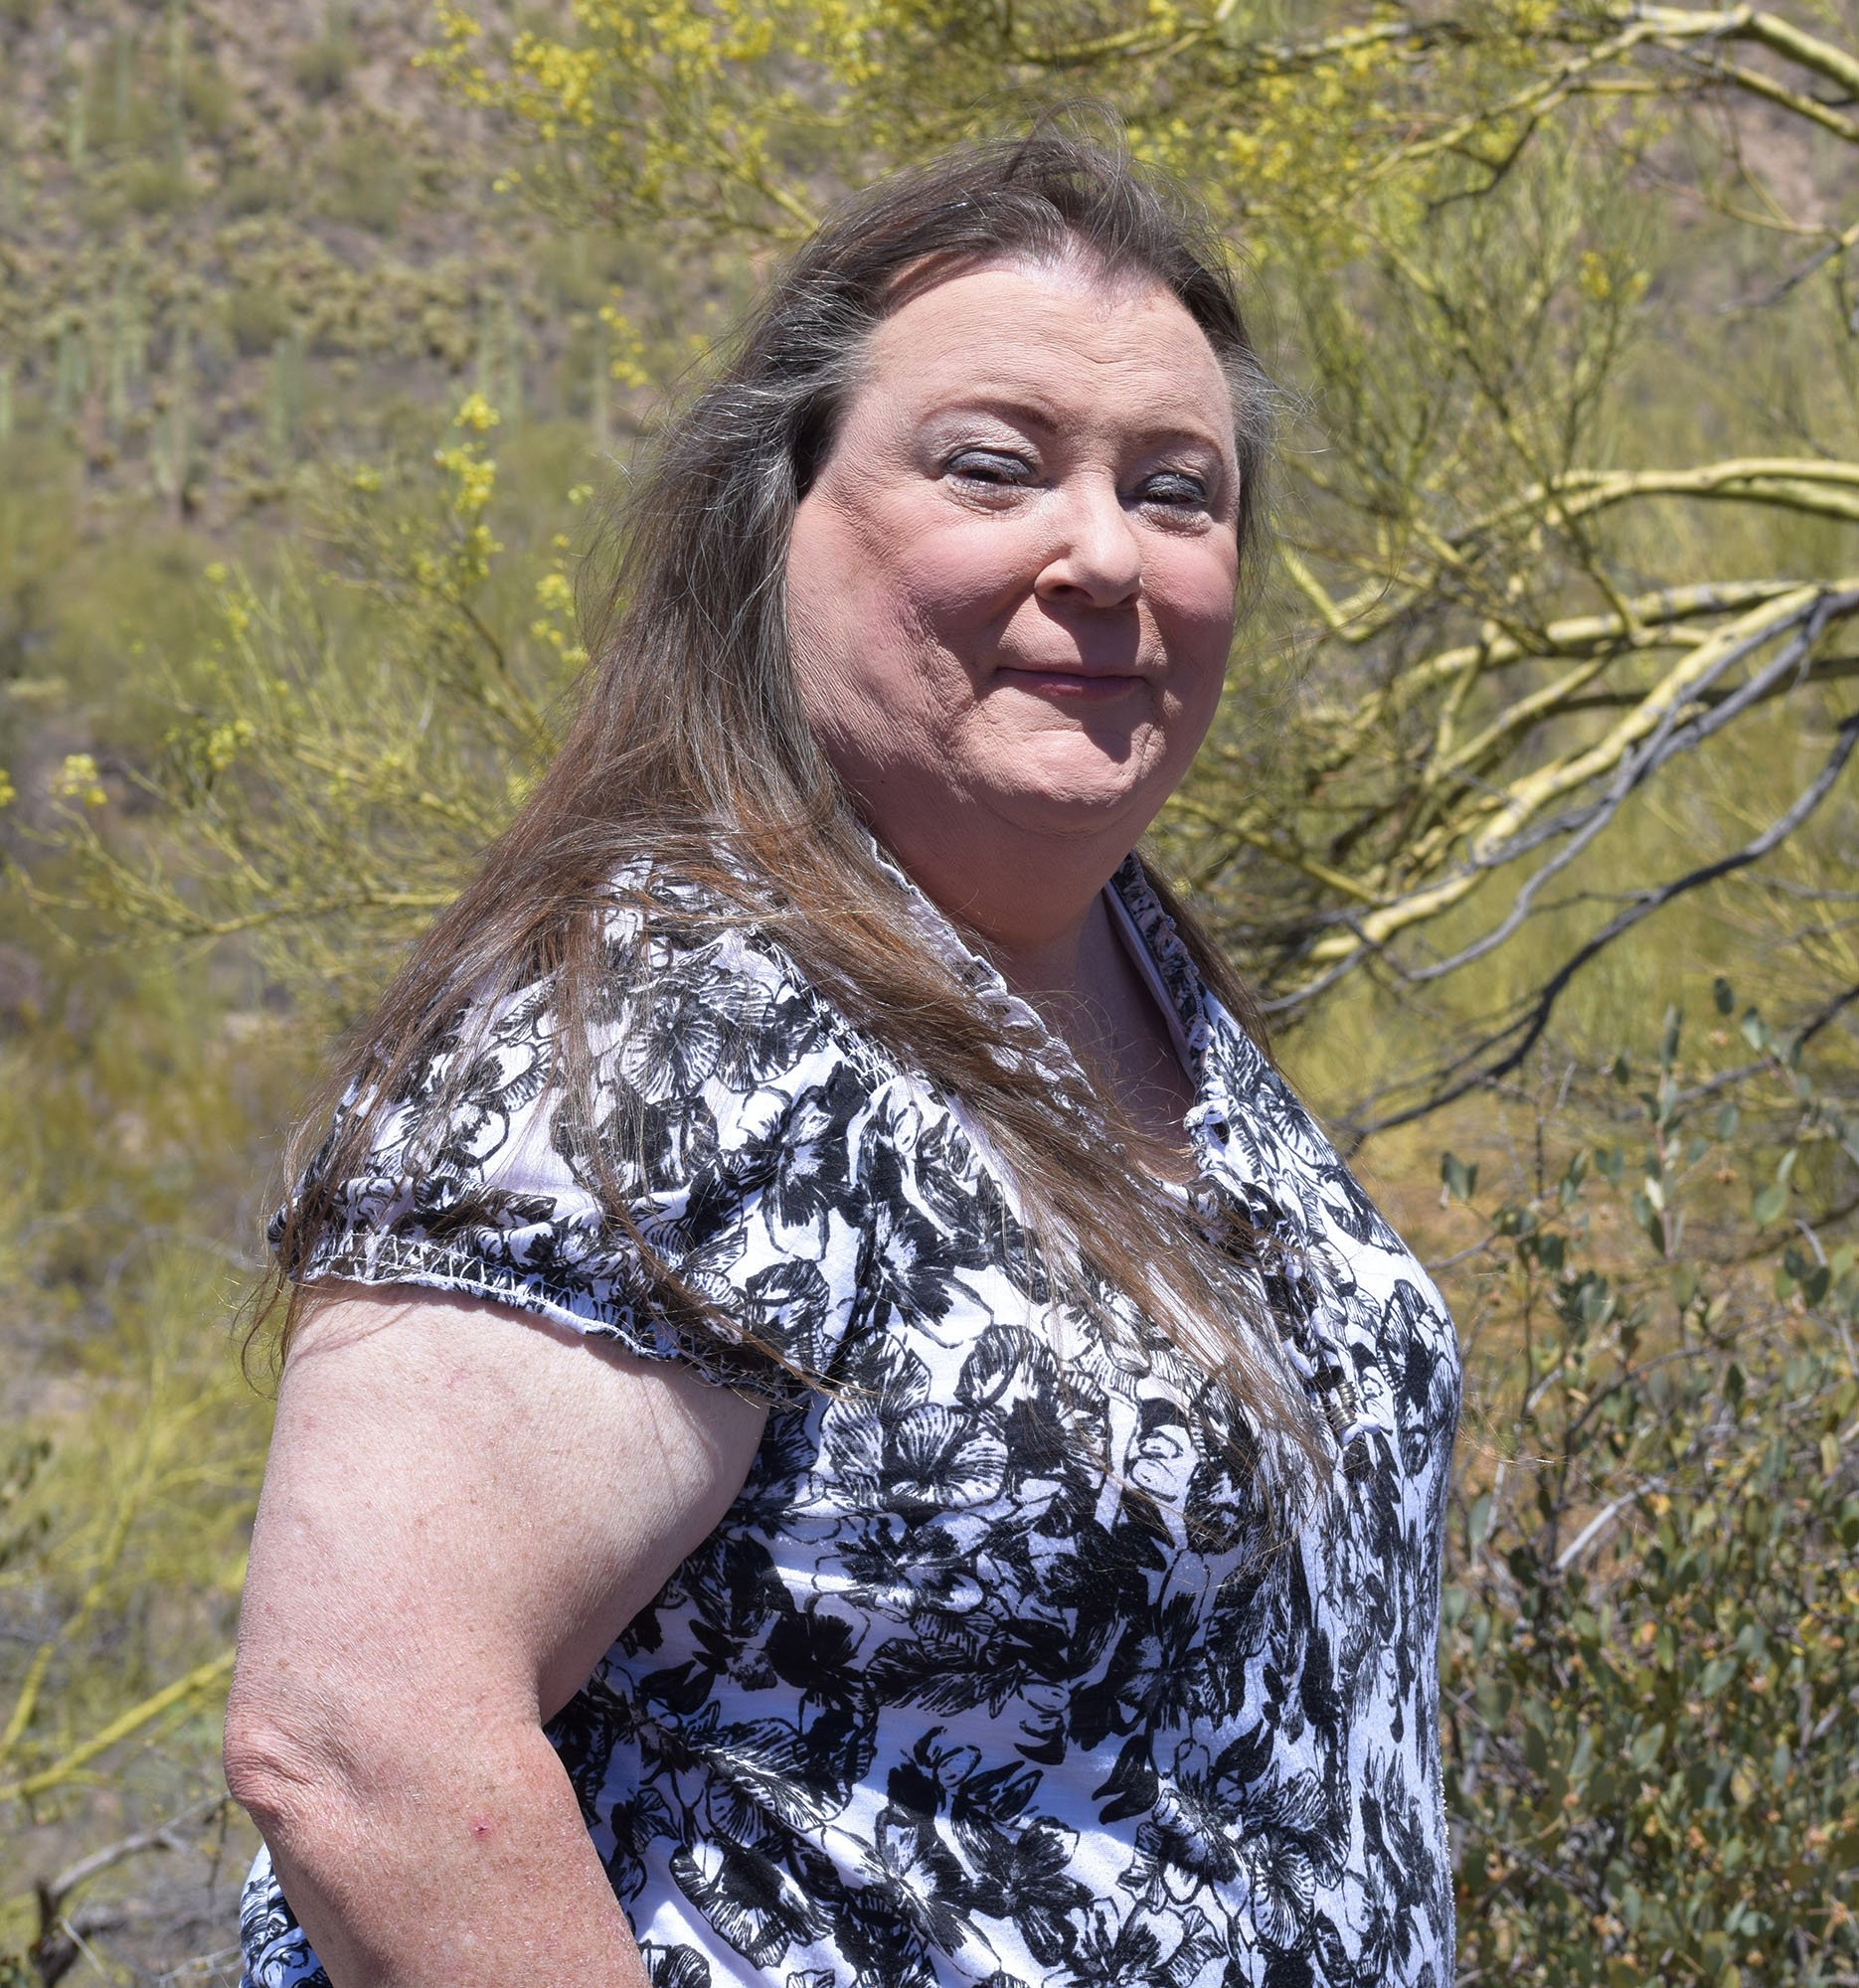 Stephanie Donoghue, who volunteers to help transgender veterans at a cliniic at the Tucson VA, said her clients felt like they got 'kicked in the gut' when President Trump said he would ban transgender soldiers. (Source: Stephanie Donoghue)